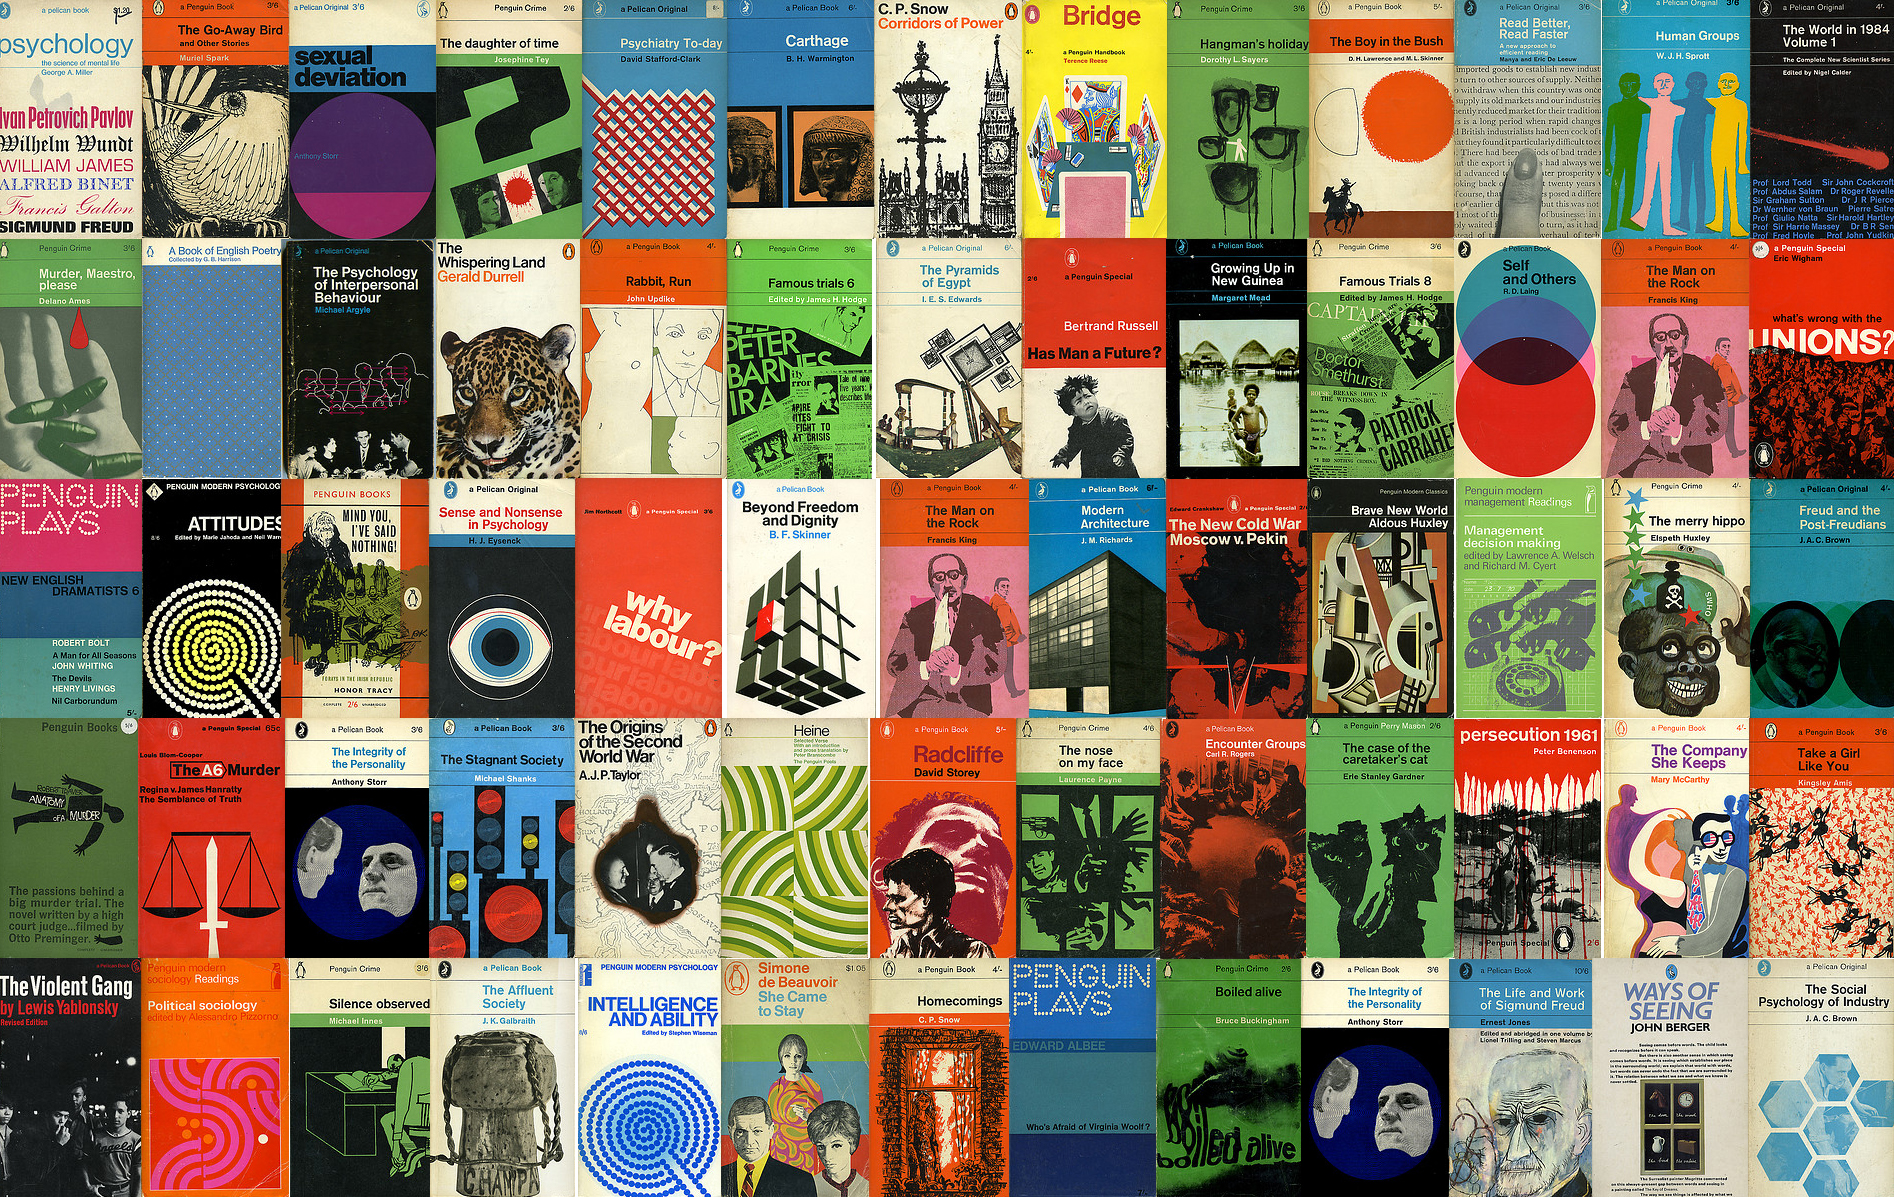 Penguin Covers